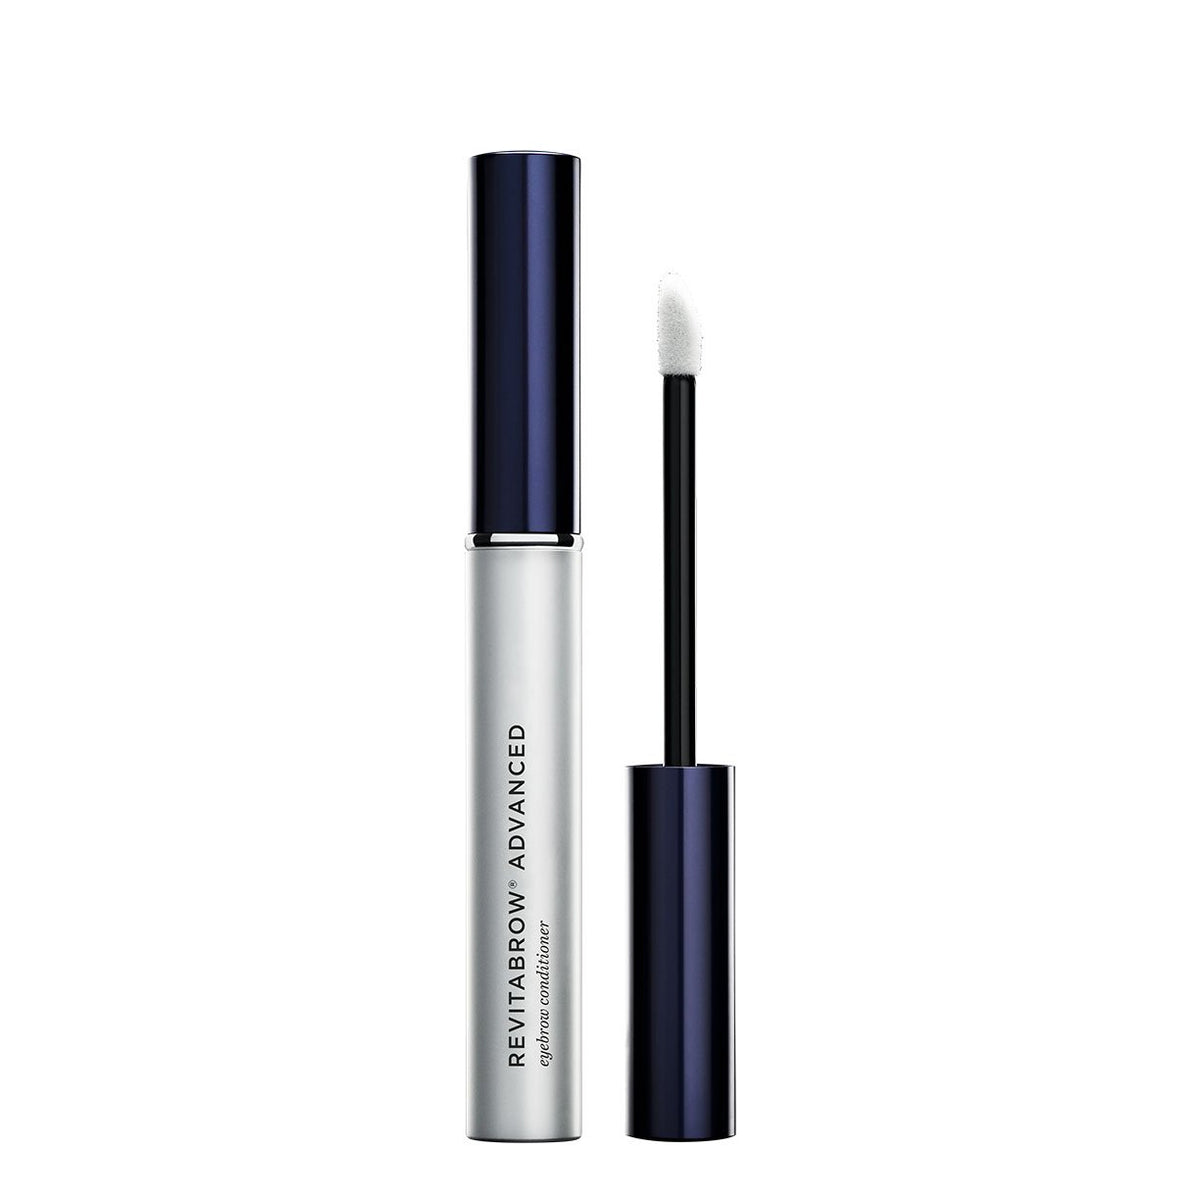 REVITABROW® ADVANCED EYEBROW CONDITIONER - ÖGONBRYNSSERUM